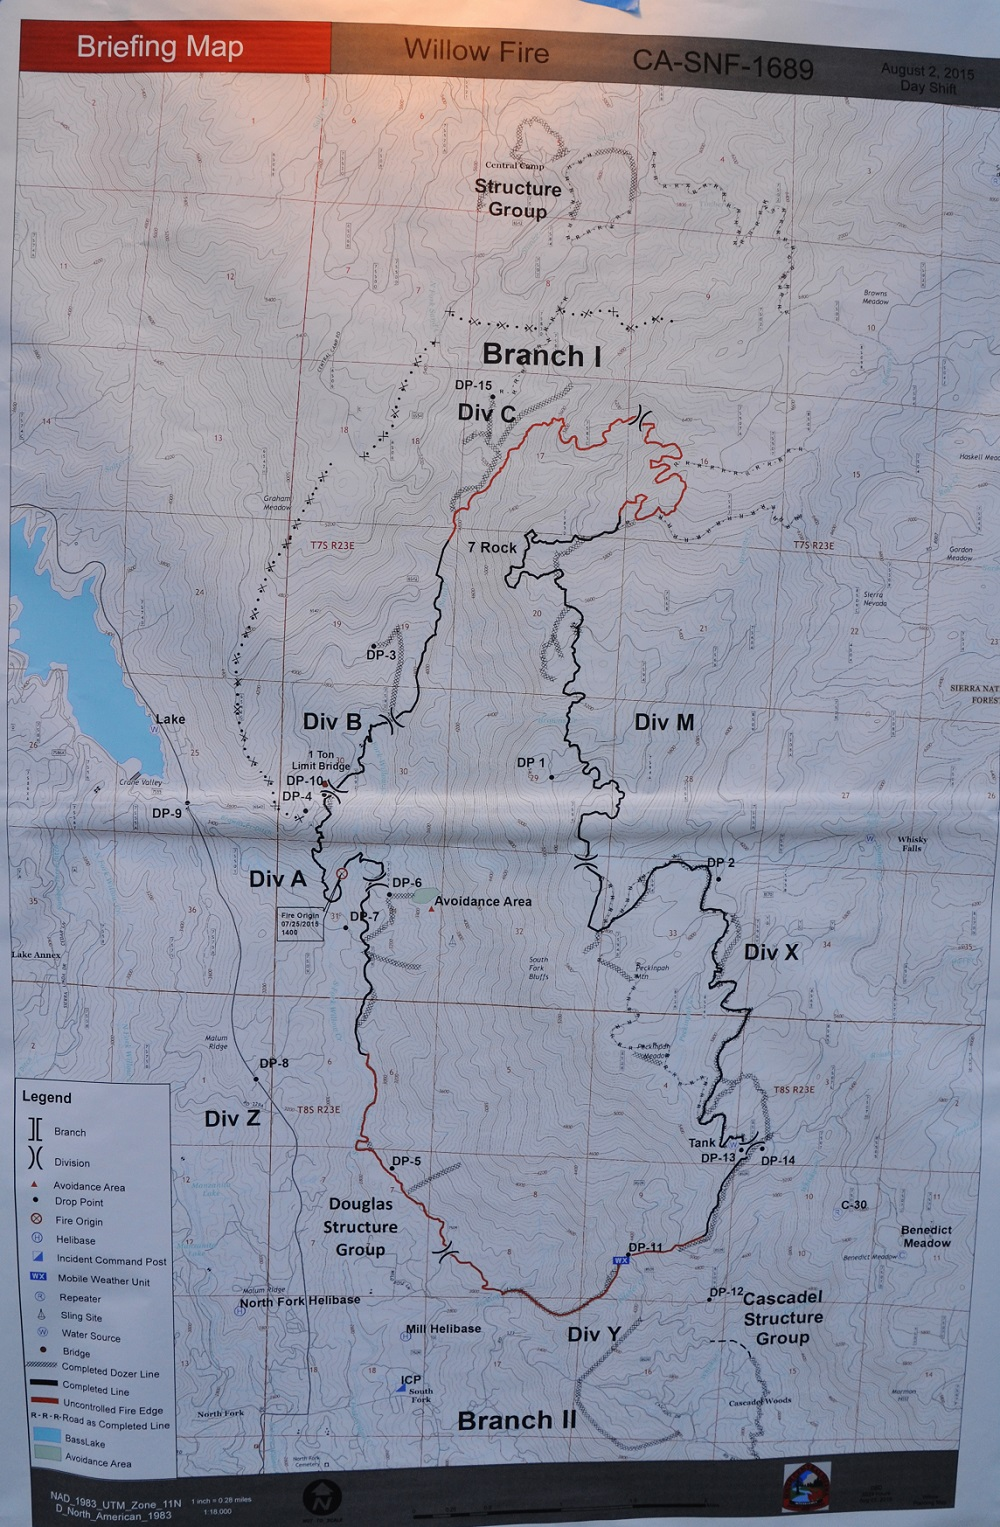 Willow Fire perimeter map 8-2-15 6 am